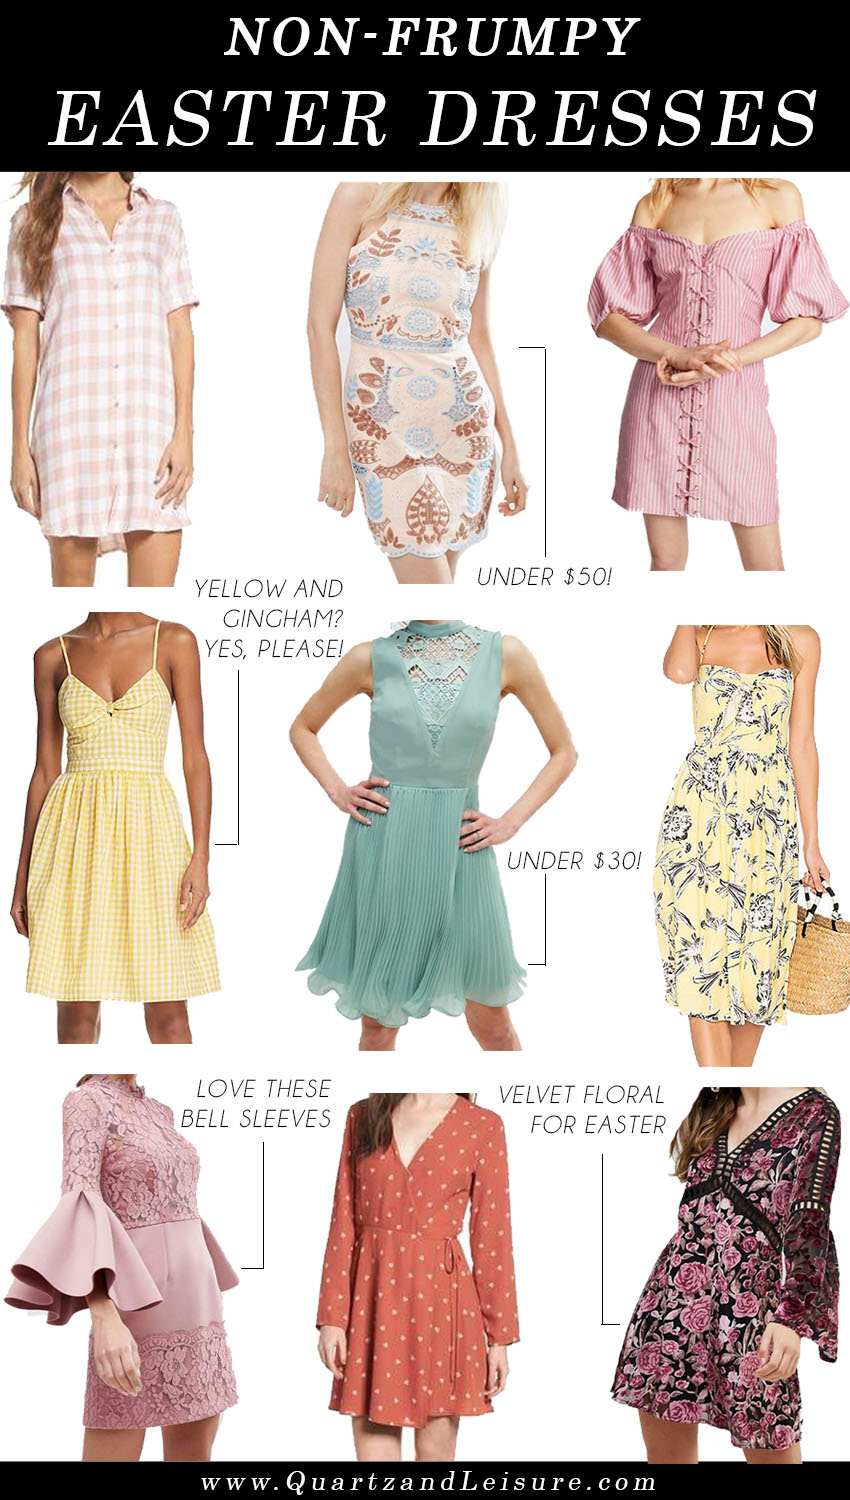 Easter Dresses, ASOS lace dress, WAYF dress, BB Dakota dress